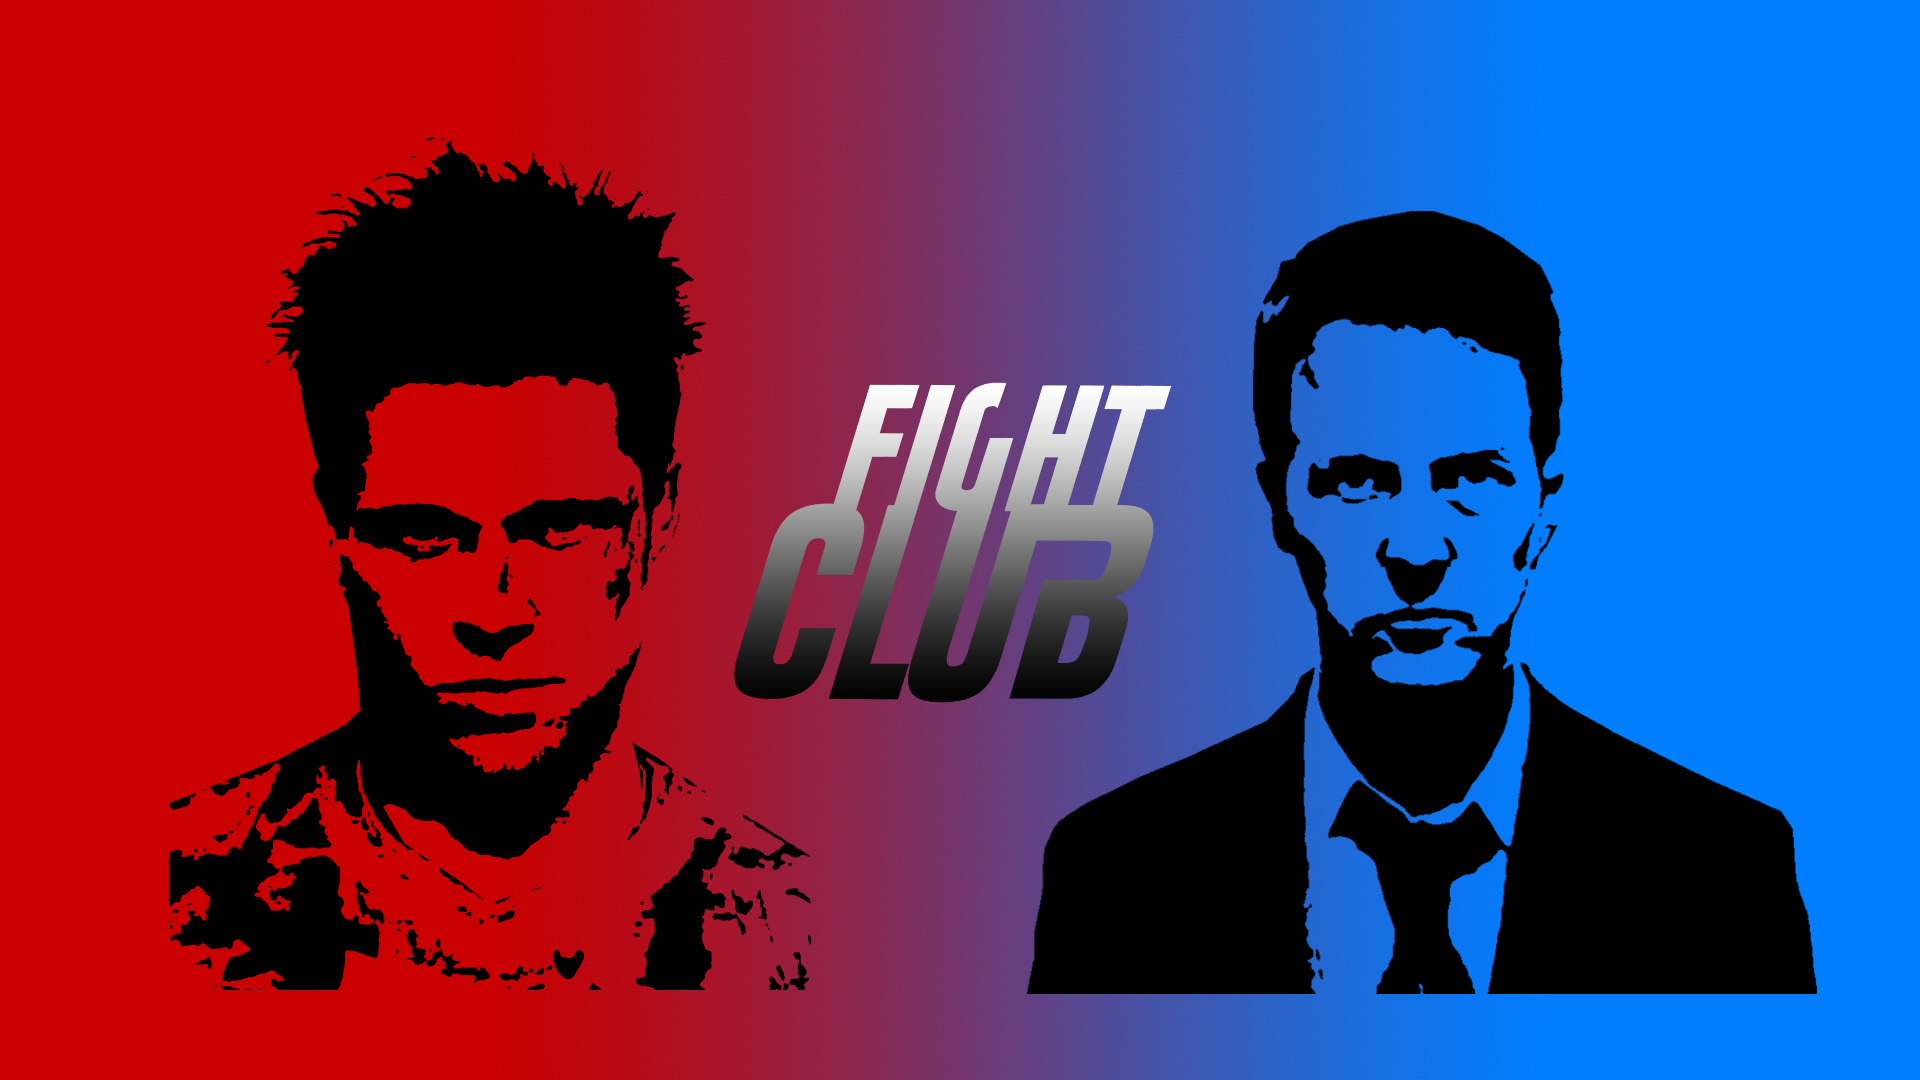 Fight Club Wallpapers Pictures Images HD Wallpapers Download Free Images Wallpaper [1000image.com]